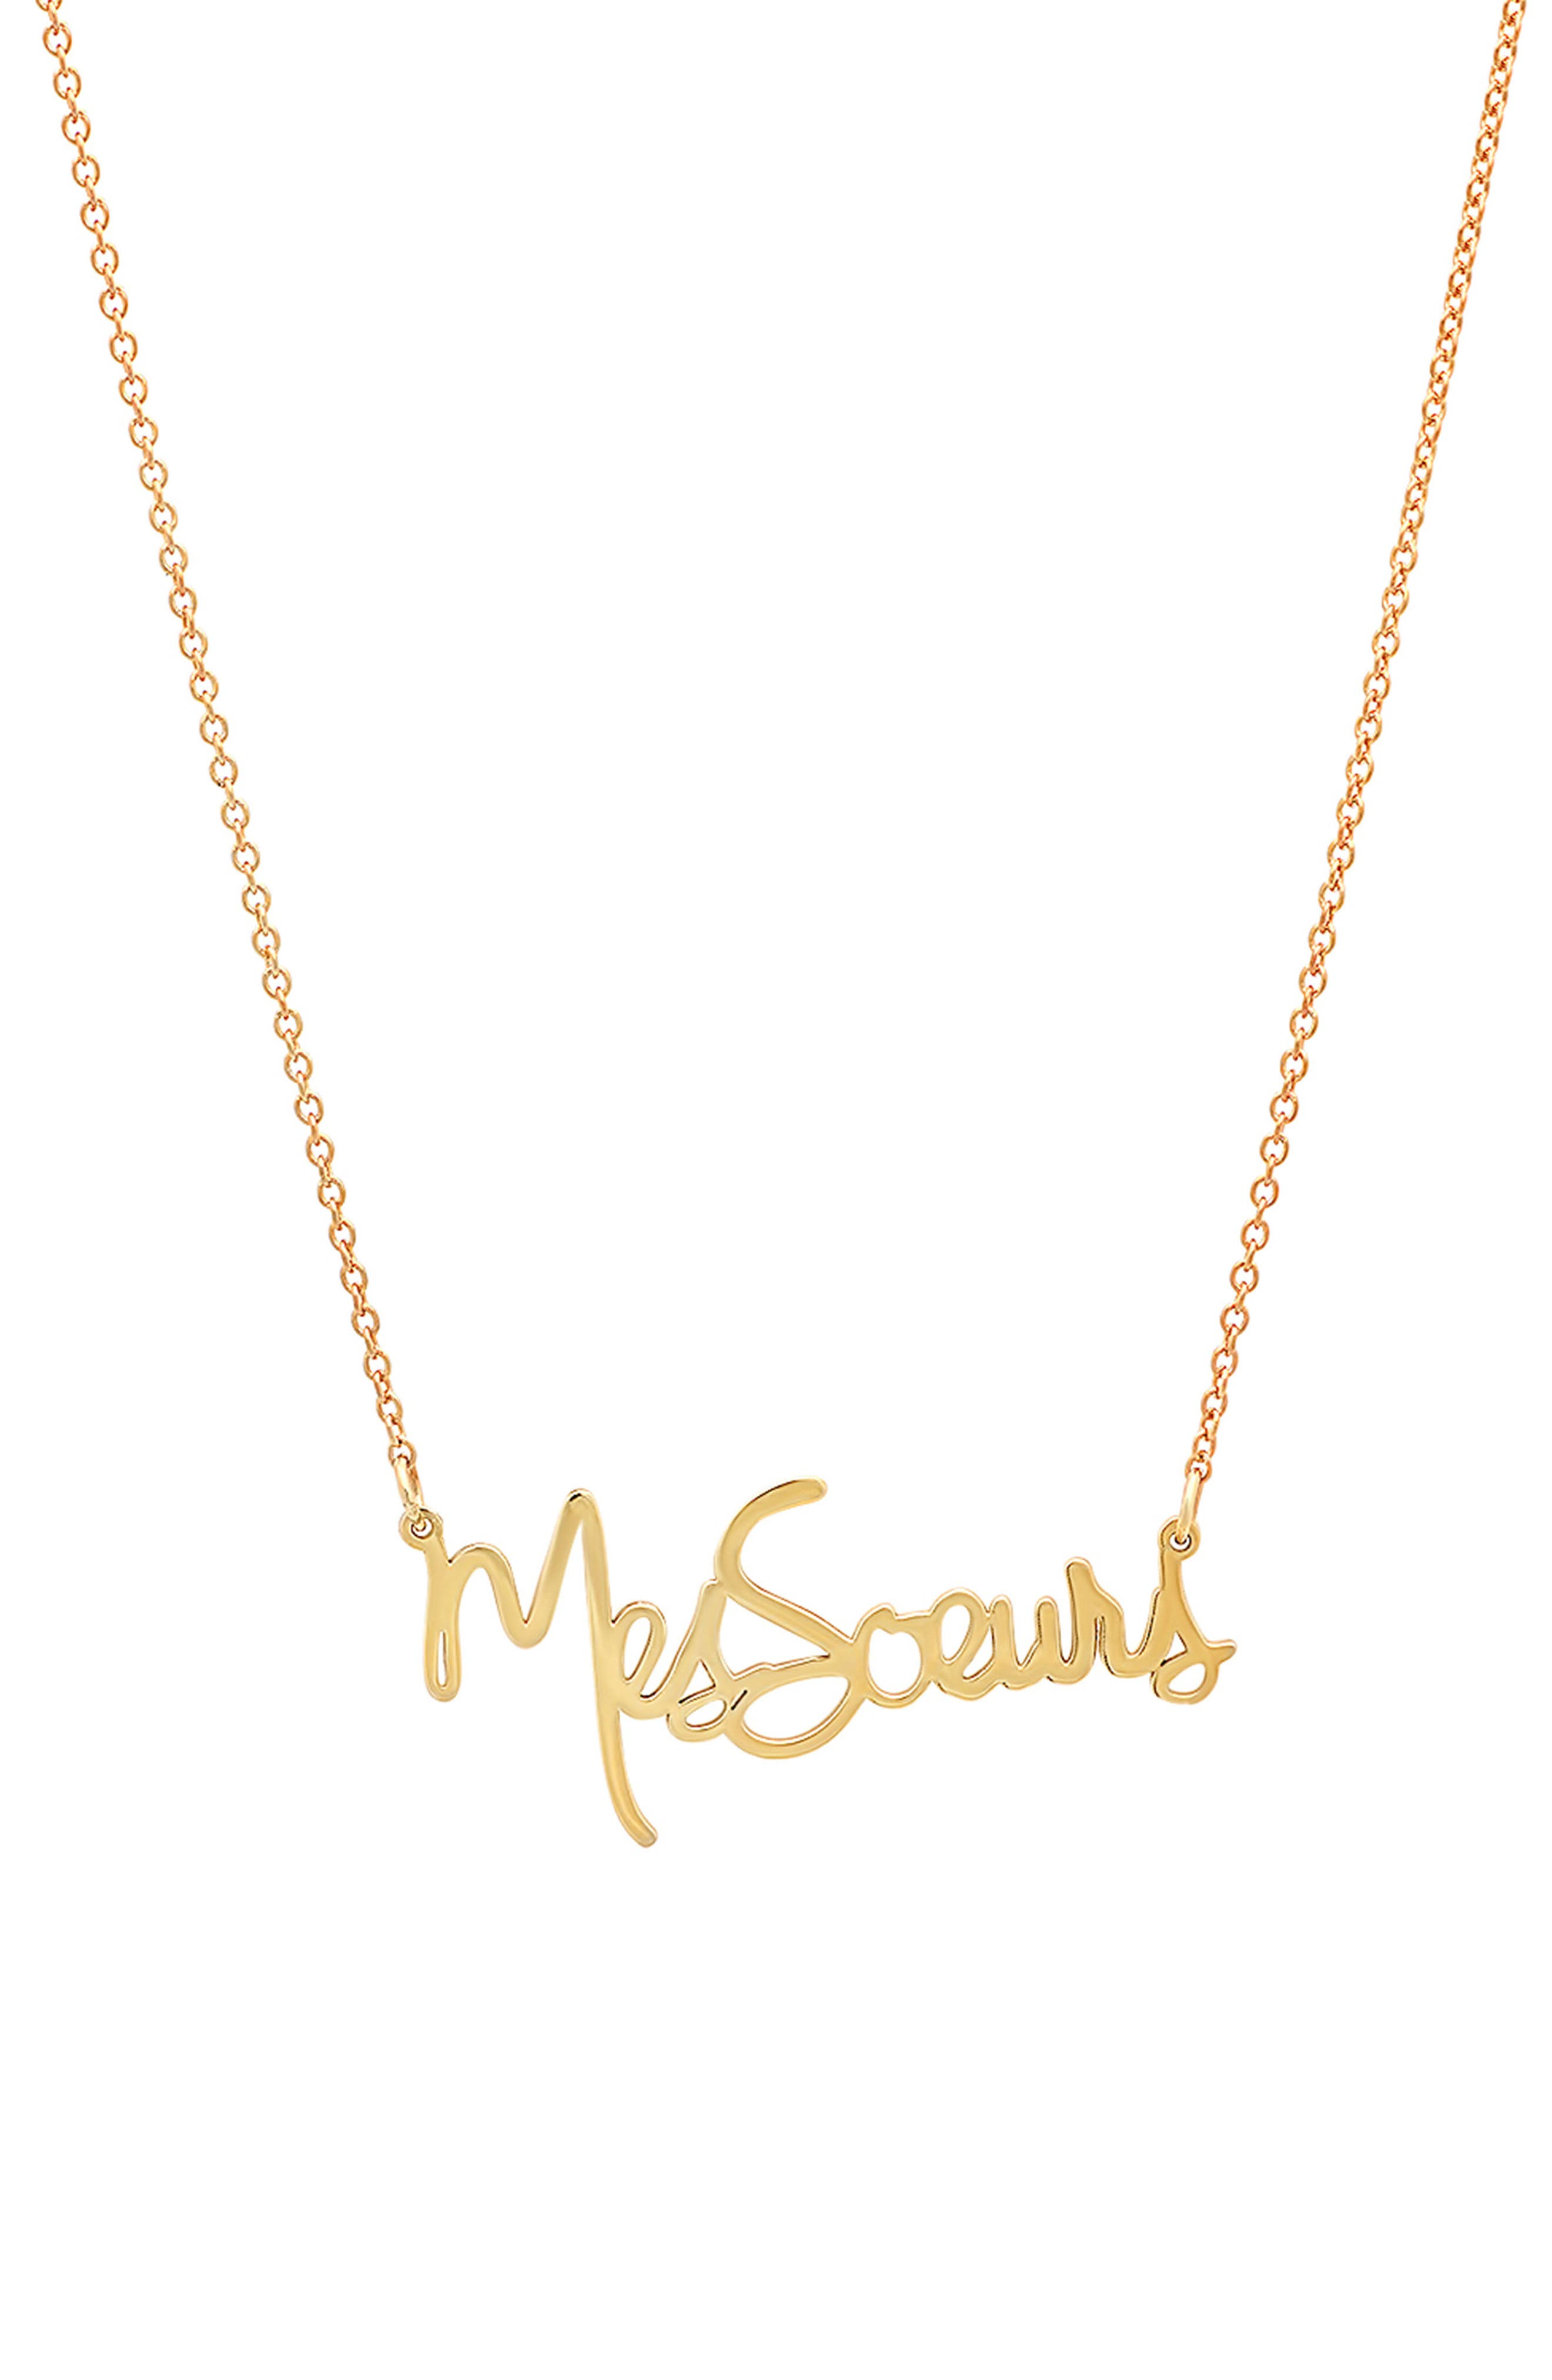 x Striiike Salon Mes Soeurs Pendant Necklace,                         Main,                         color, YELLOW GOLD